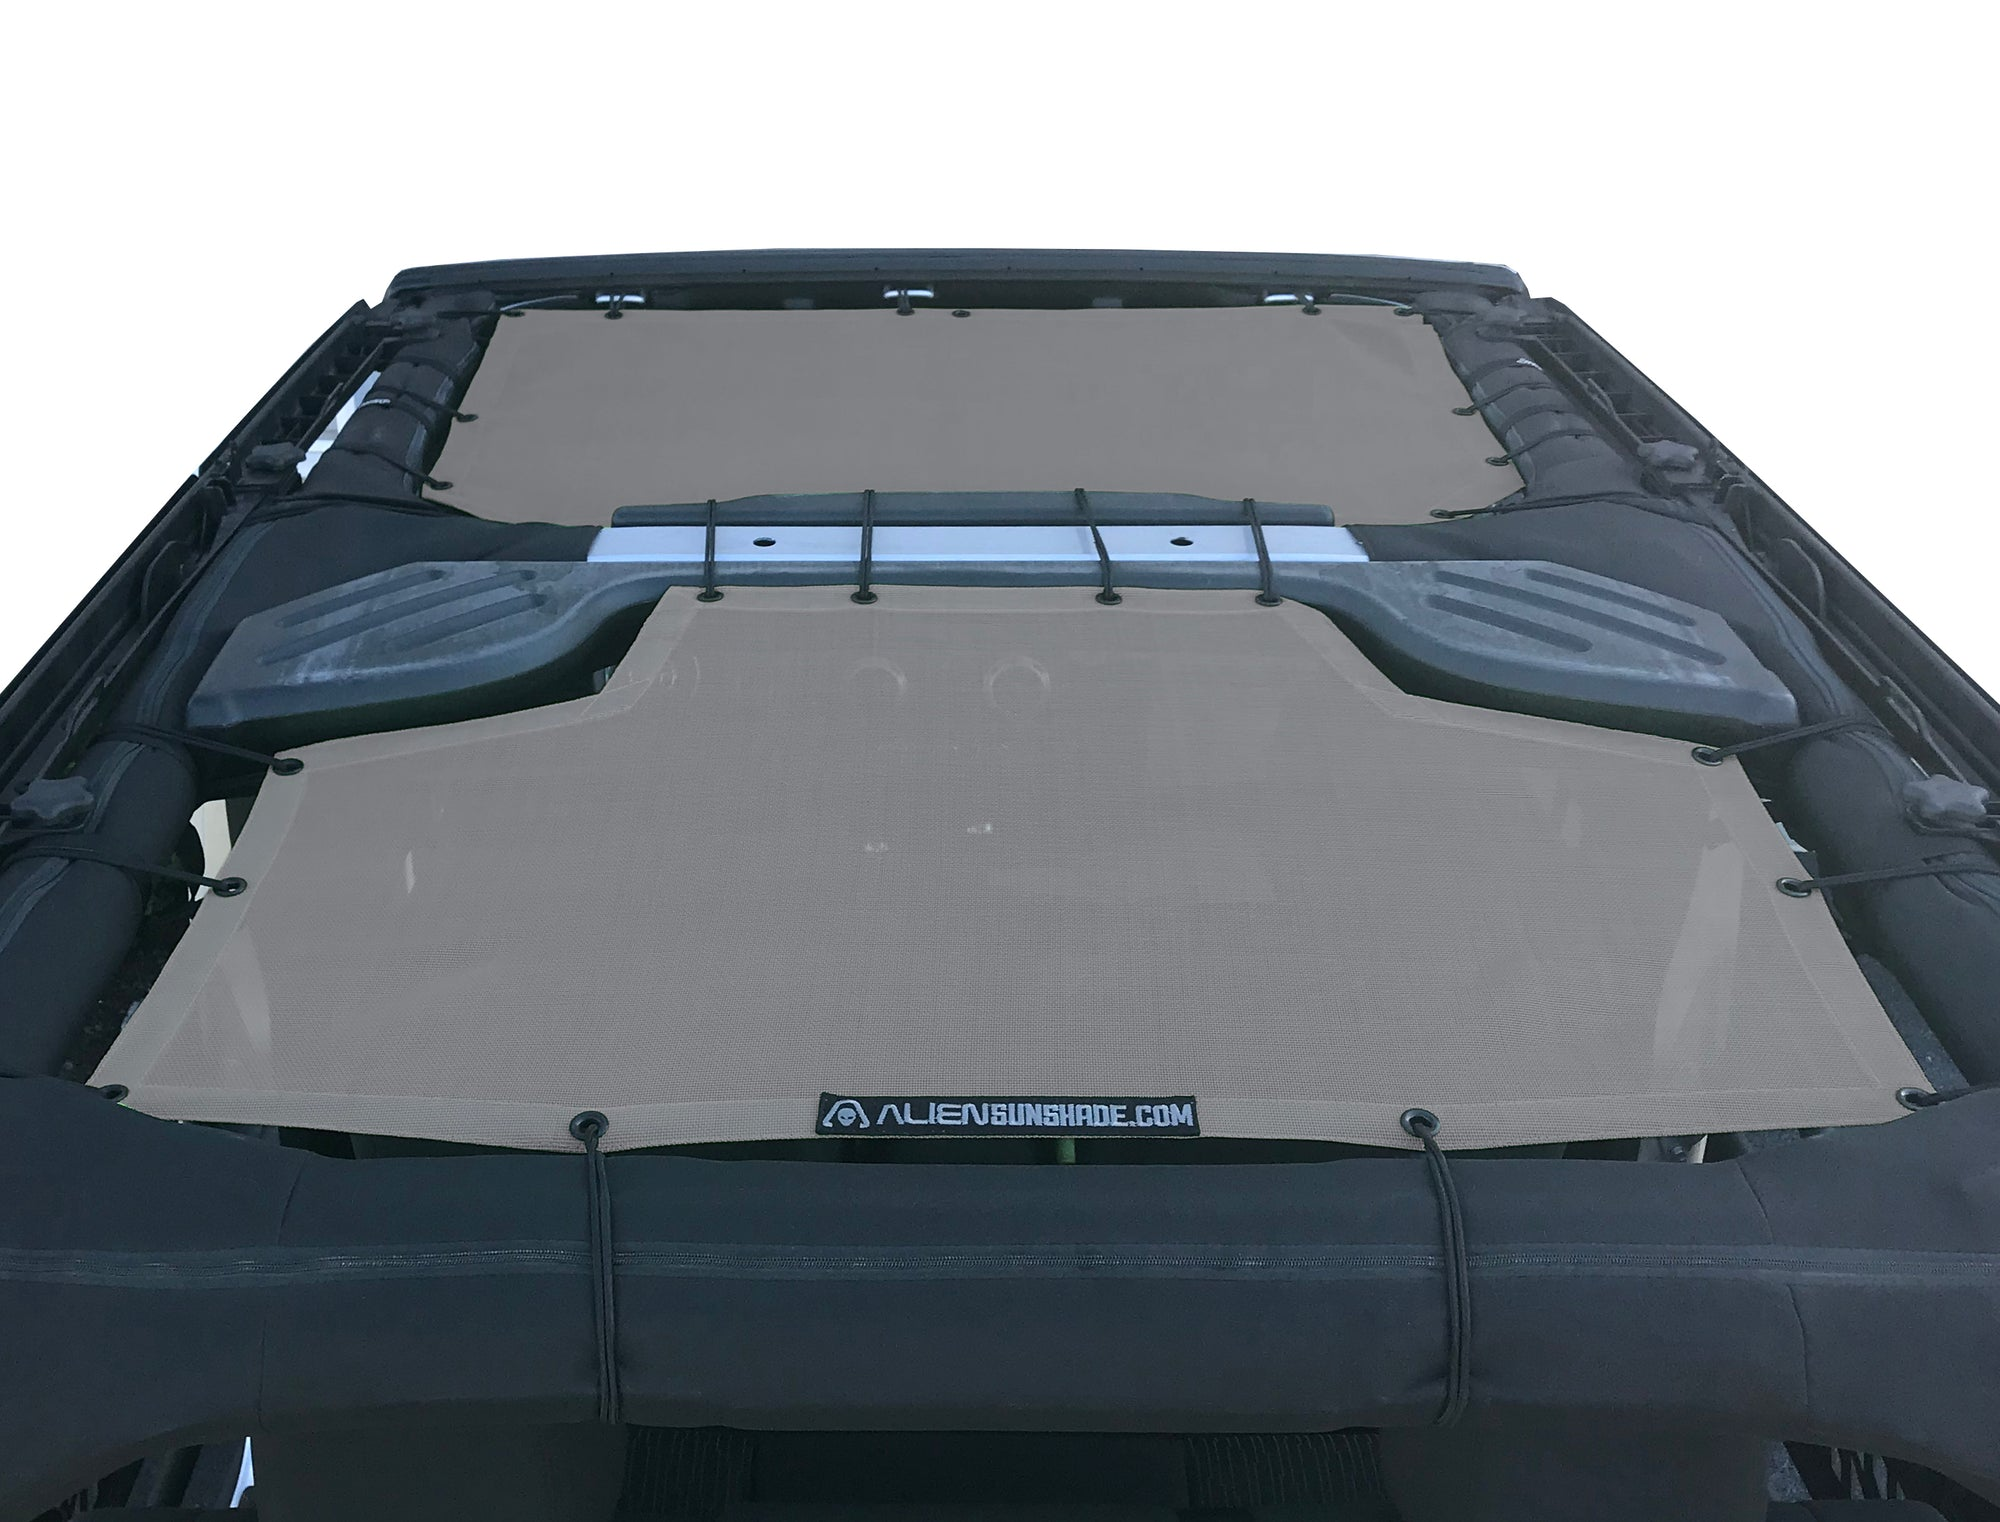 Alien Sunshade Jeep Wrangler Front & Rear Passengers Mesh Sun Shade Top Cover for 4-Door JKU (07-18)